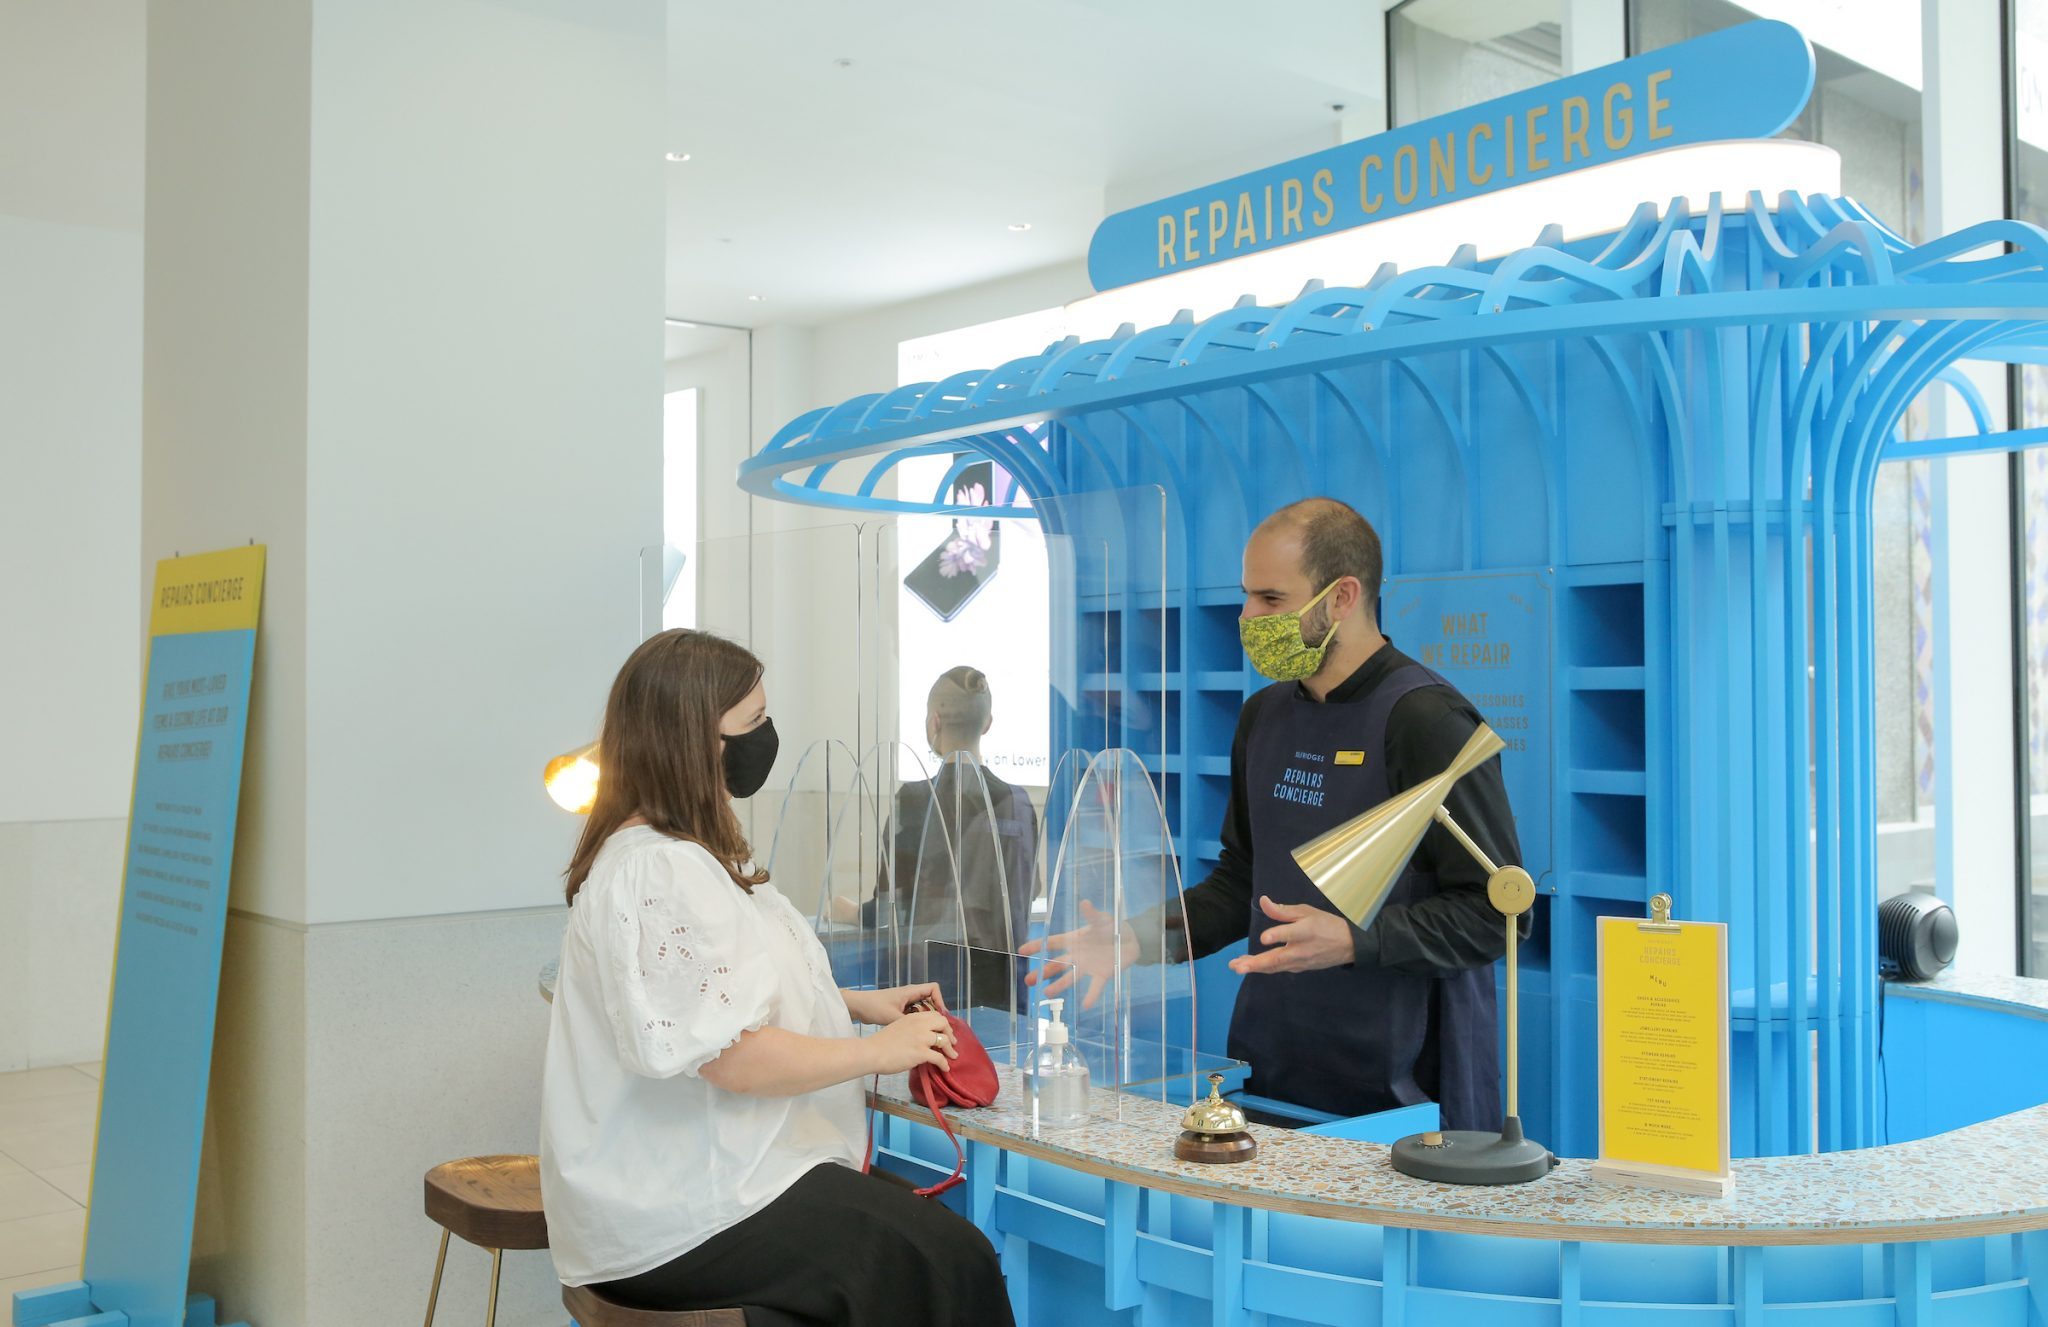 Repairs, resale and rental are key pillars of the new Selfridges strategy